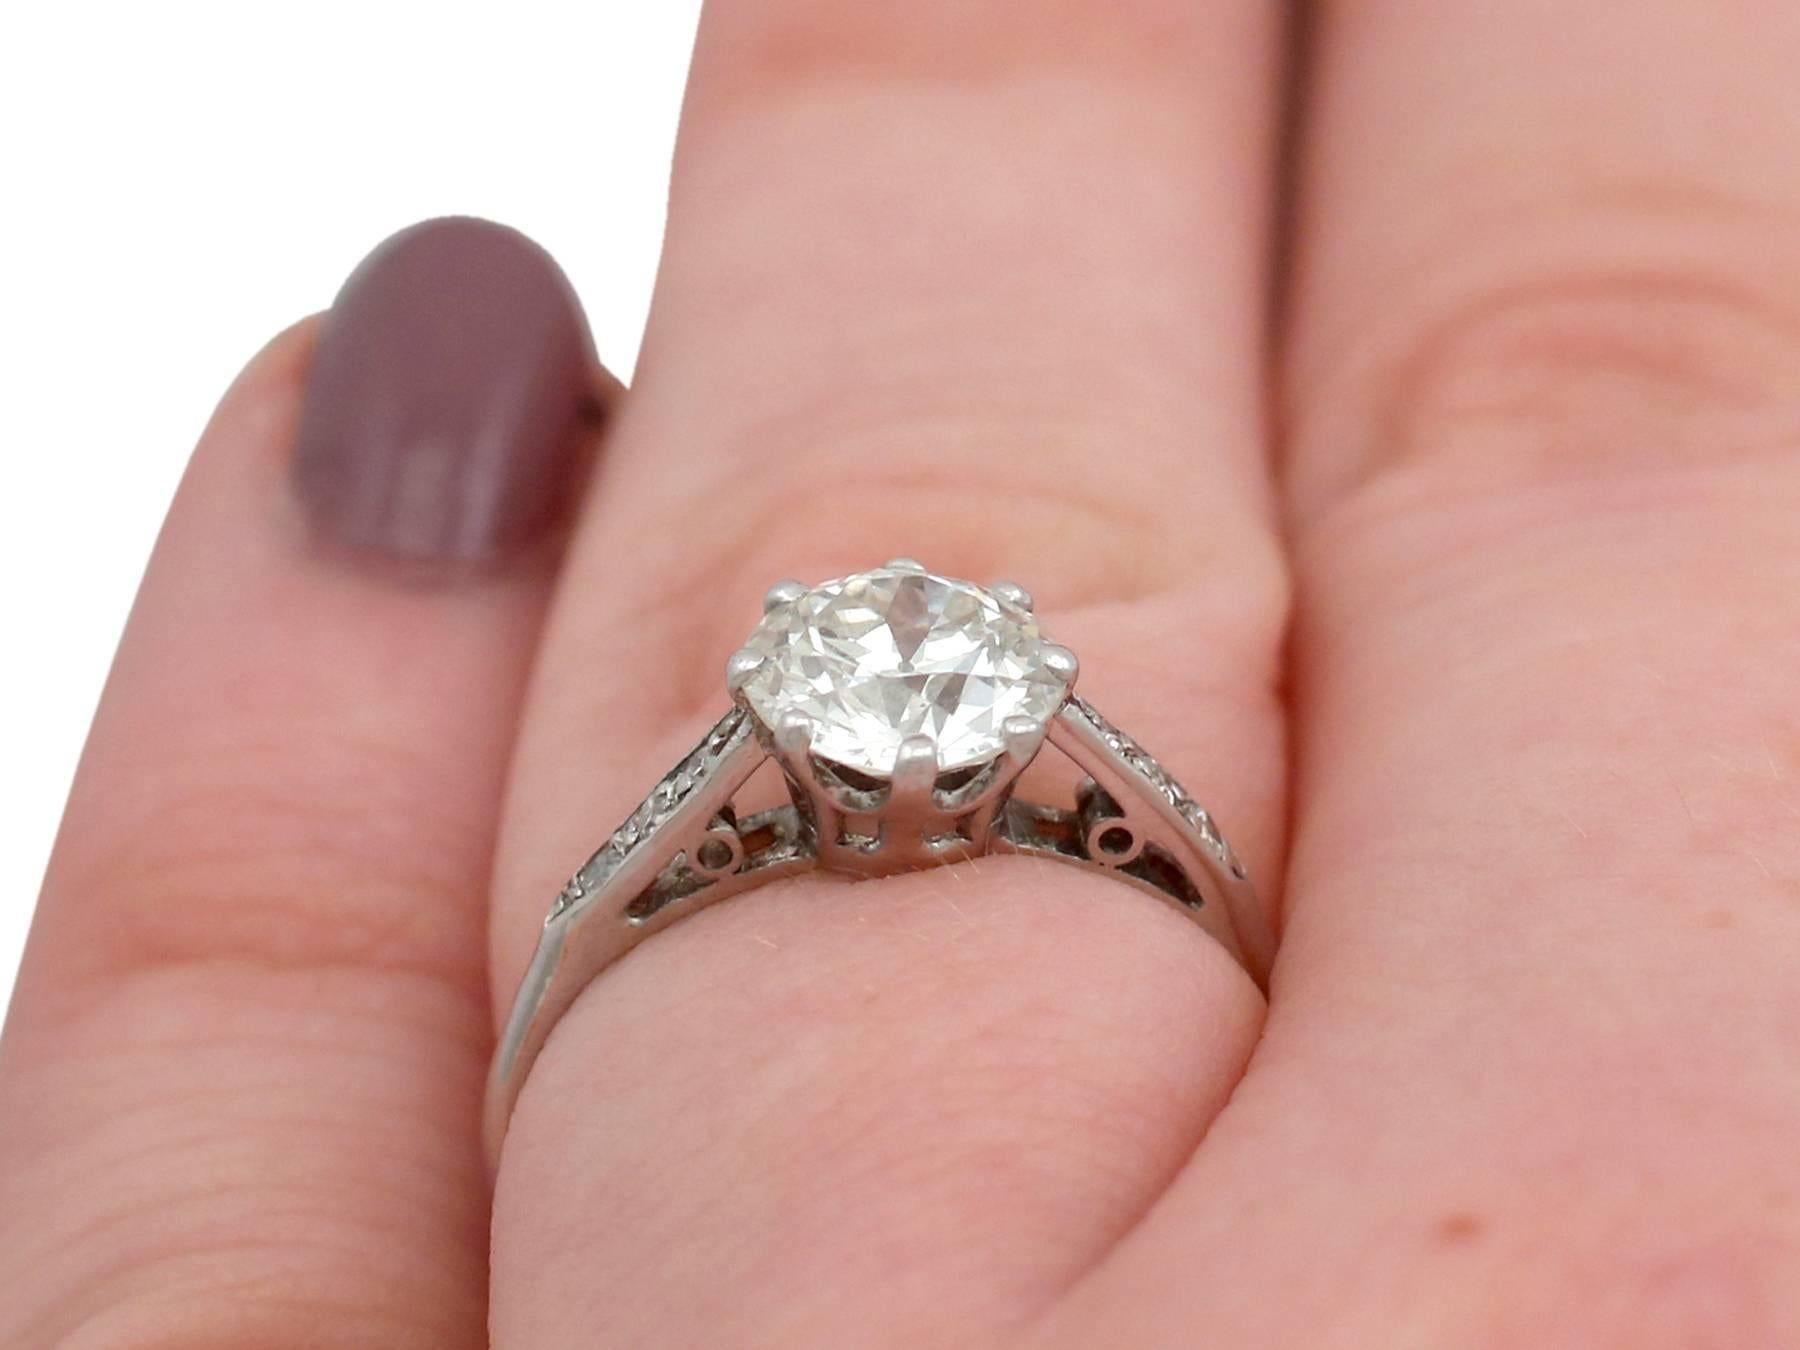 1940s 1.42 Carat Diamond Platinum Solitaire Ring For Sale at 1stdibs